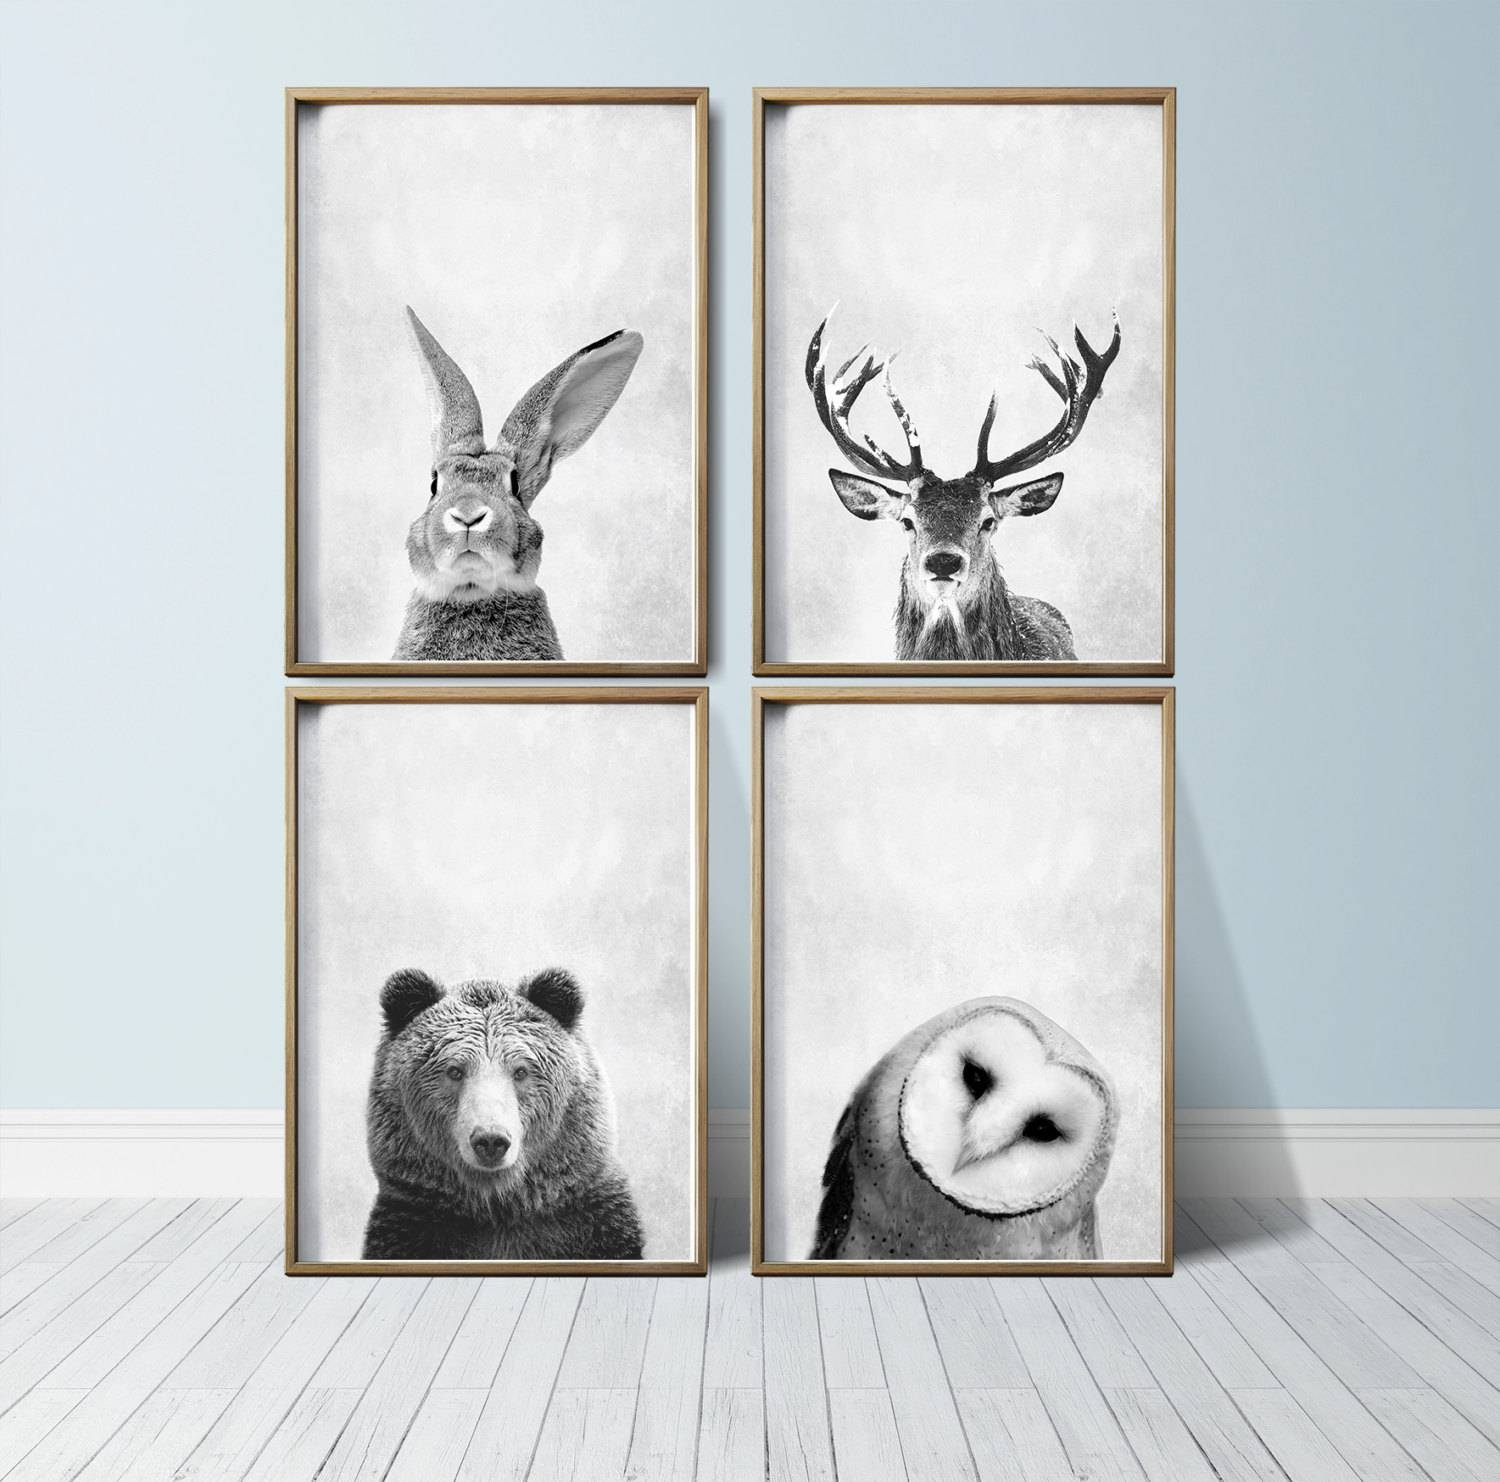 Nursery Art Nursery Deco Animal Print Art Woodland Nursery Art Inside 2018 Woodland Animal Wall Art (Gallery 8 of 20)